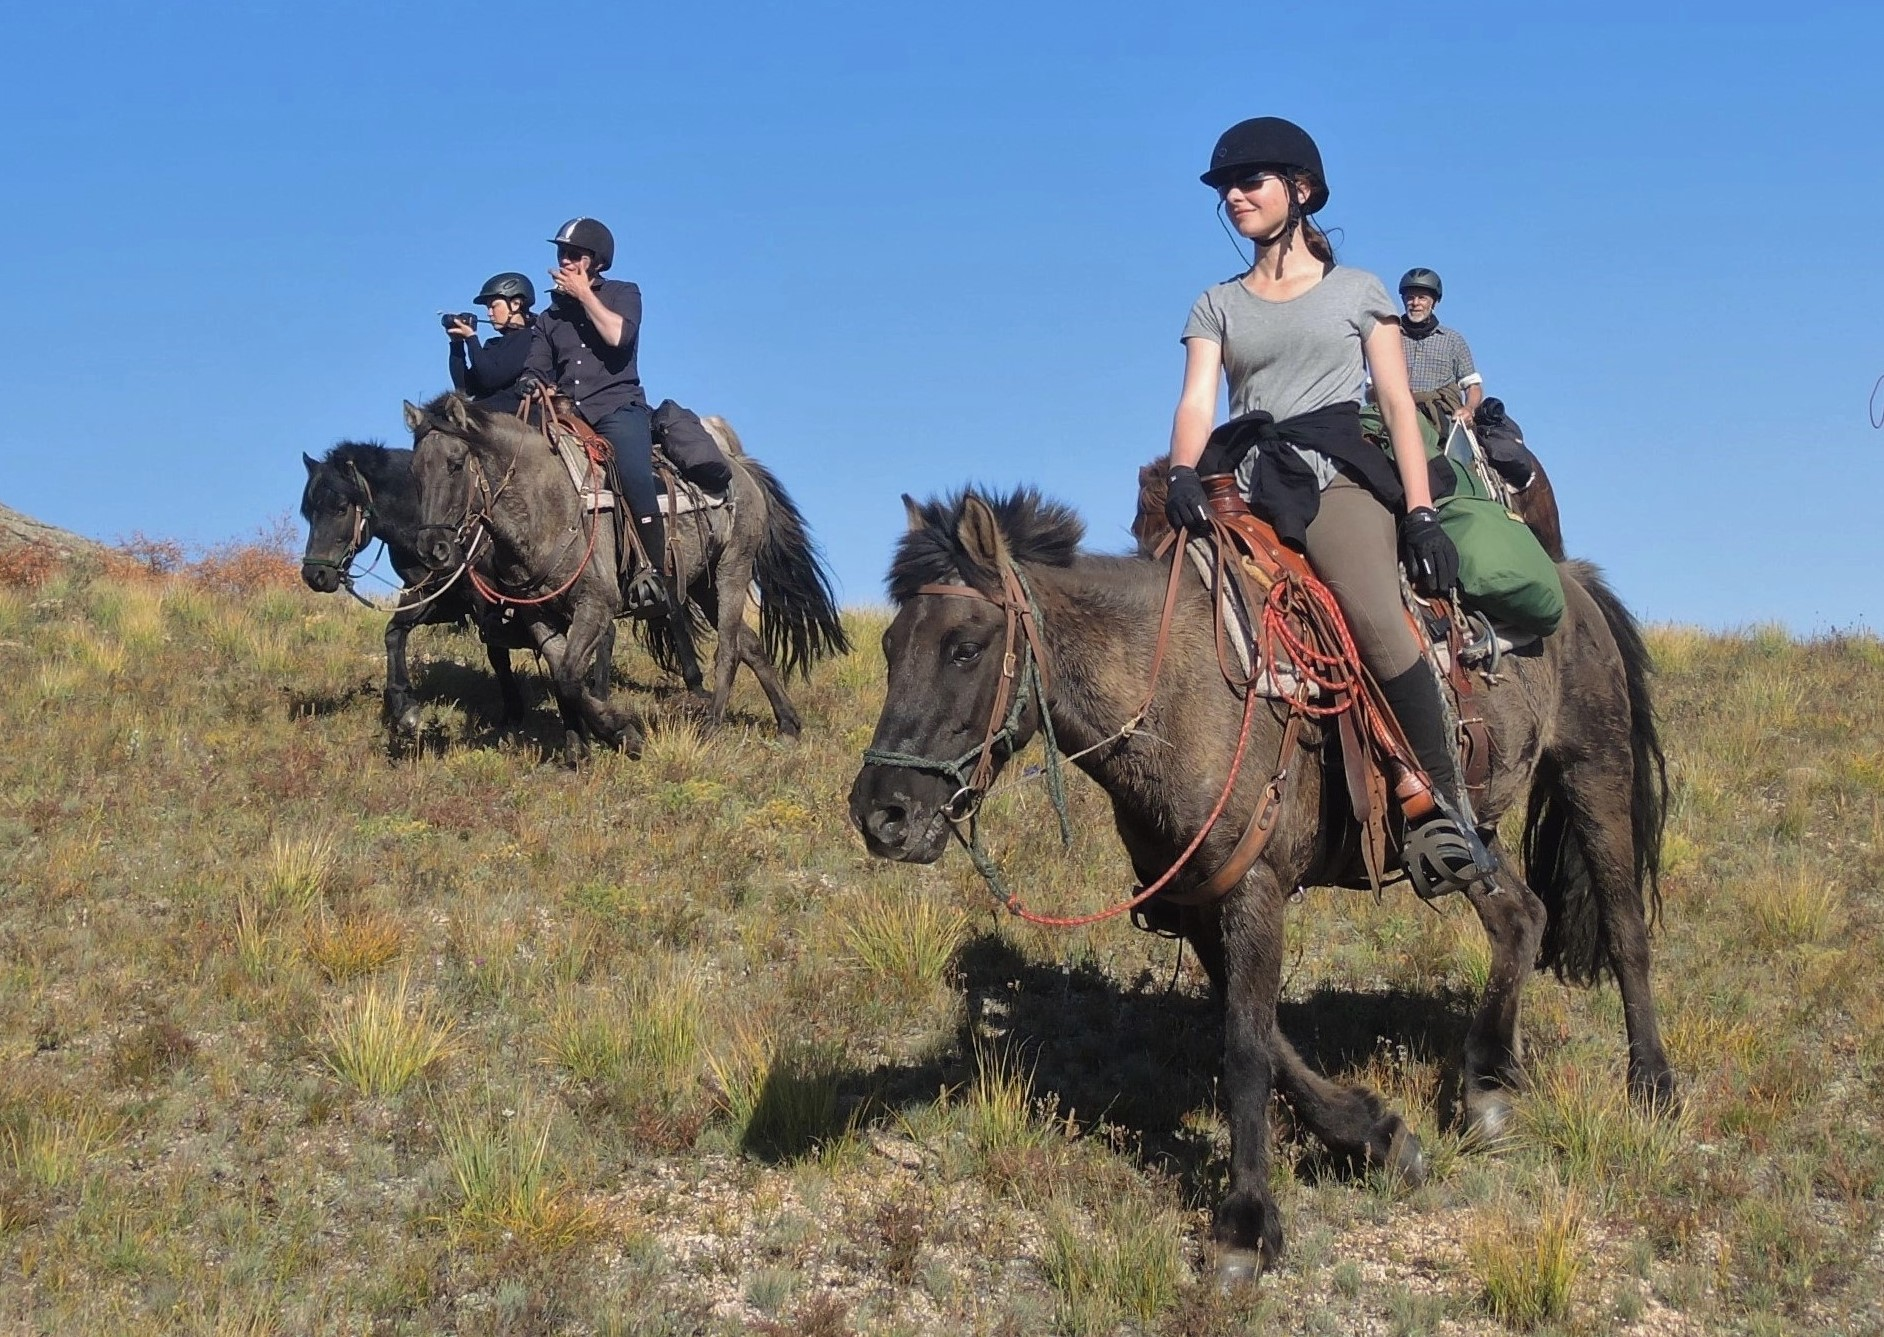 Horse Riding Mongolia – One Day Trail Rides, Stone Horse Expeditions